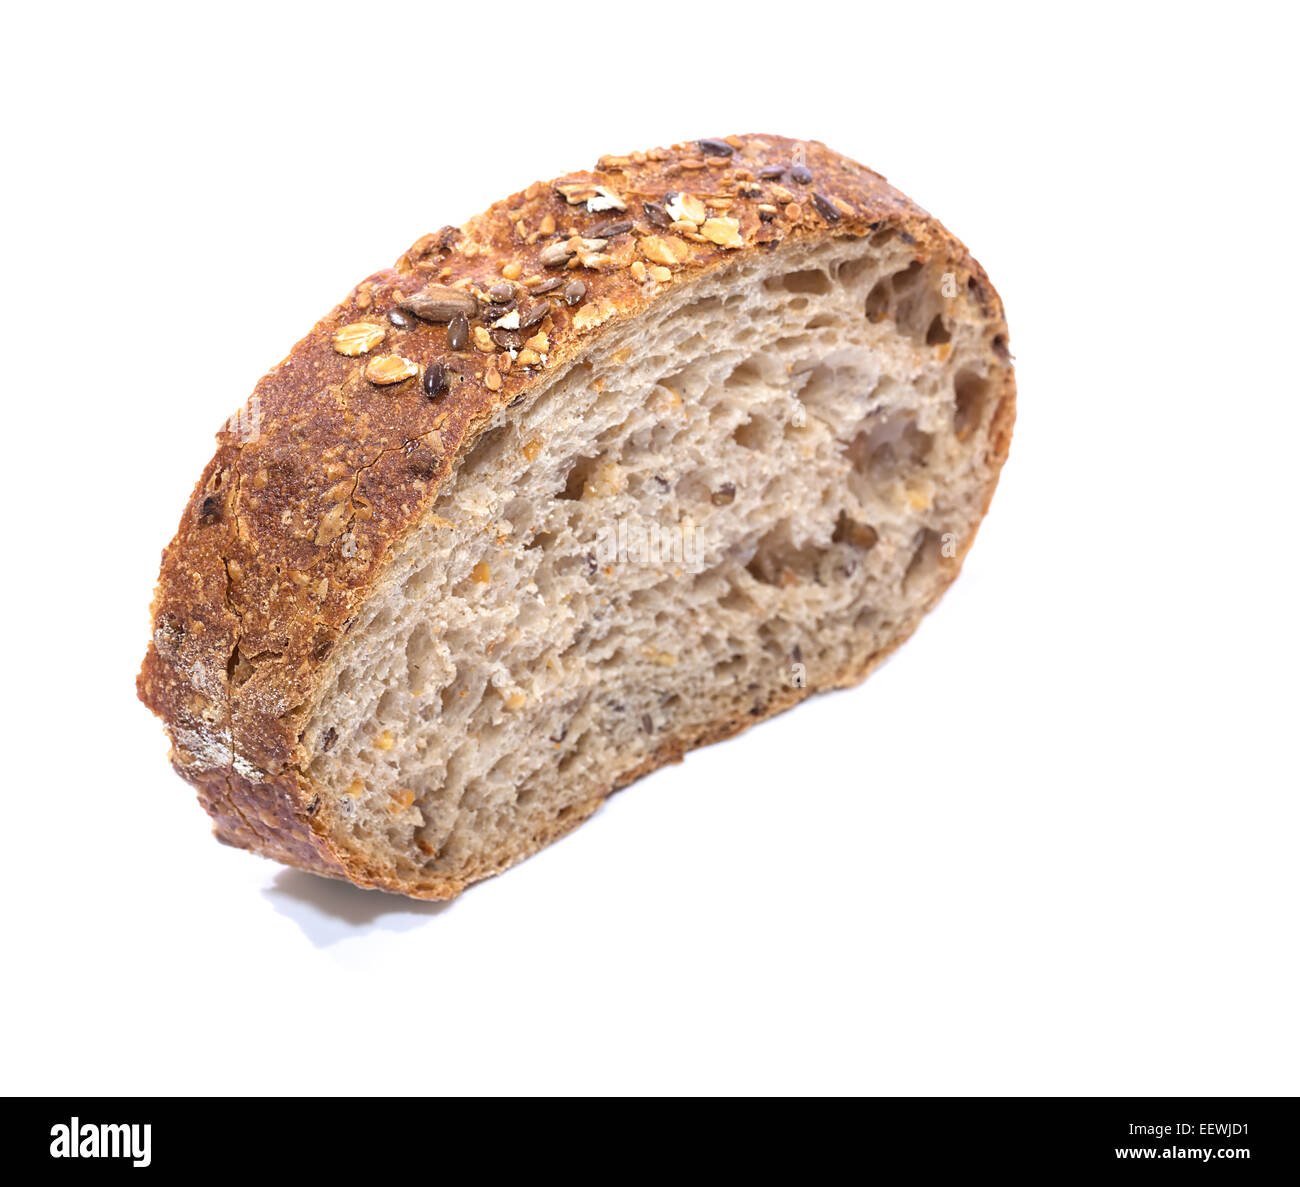 Whole grain bread Slice over white background, diagonal view with shallow focus - Stock Image